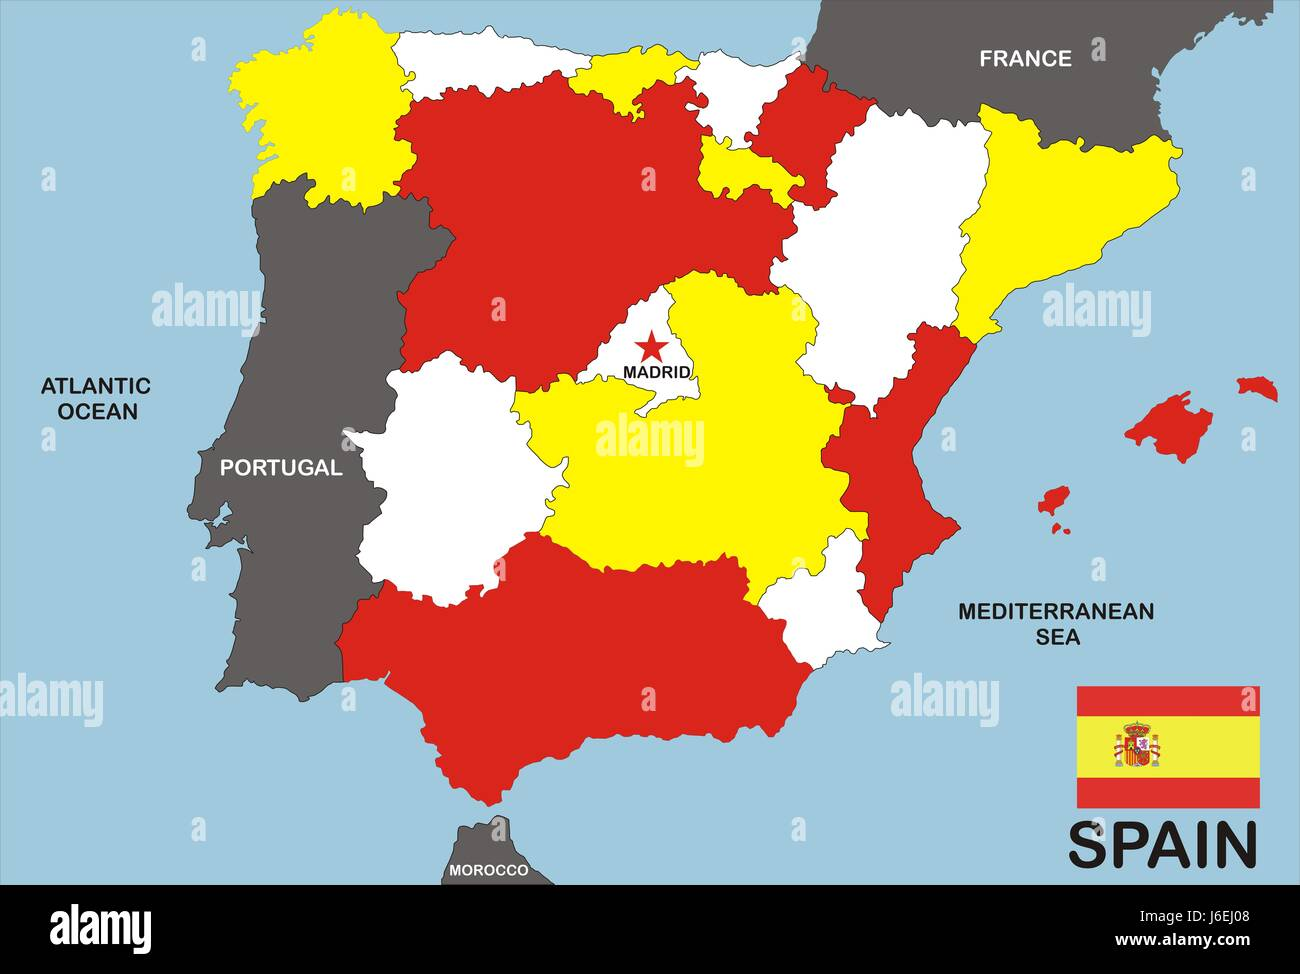 Spain map atlas map of the world profile travel isolated chart spain map atlas map of the world profile travel isolated chart emblem europe gumiabroncs Images